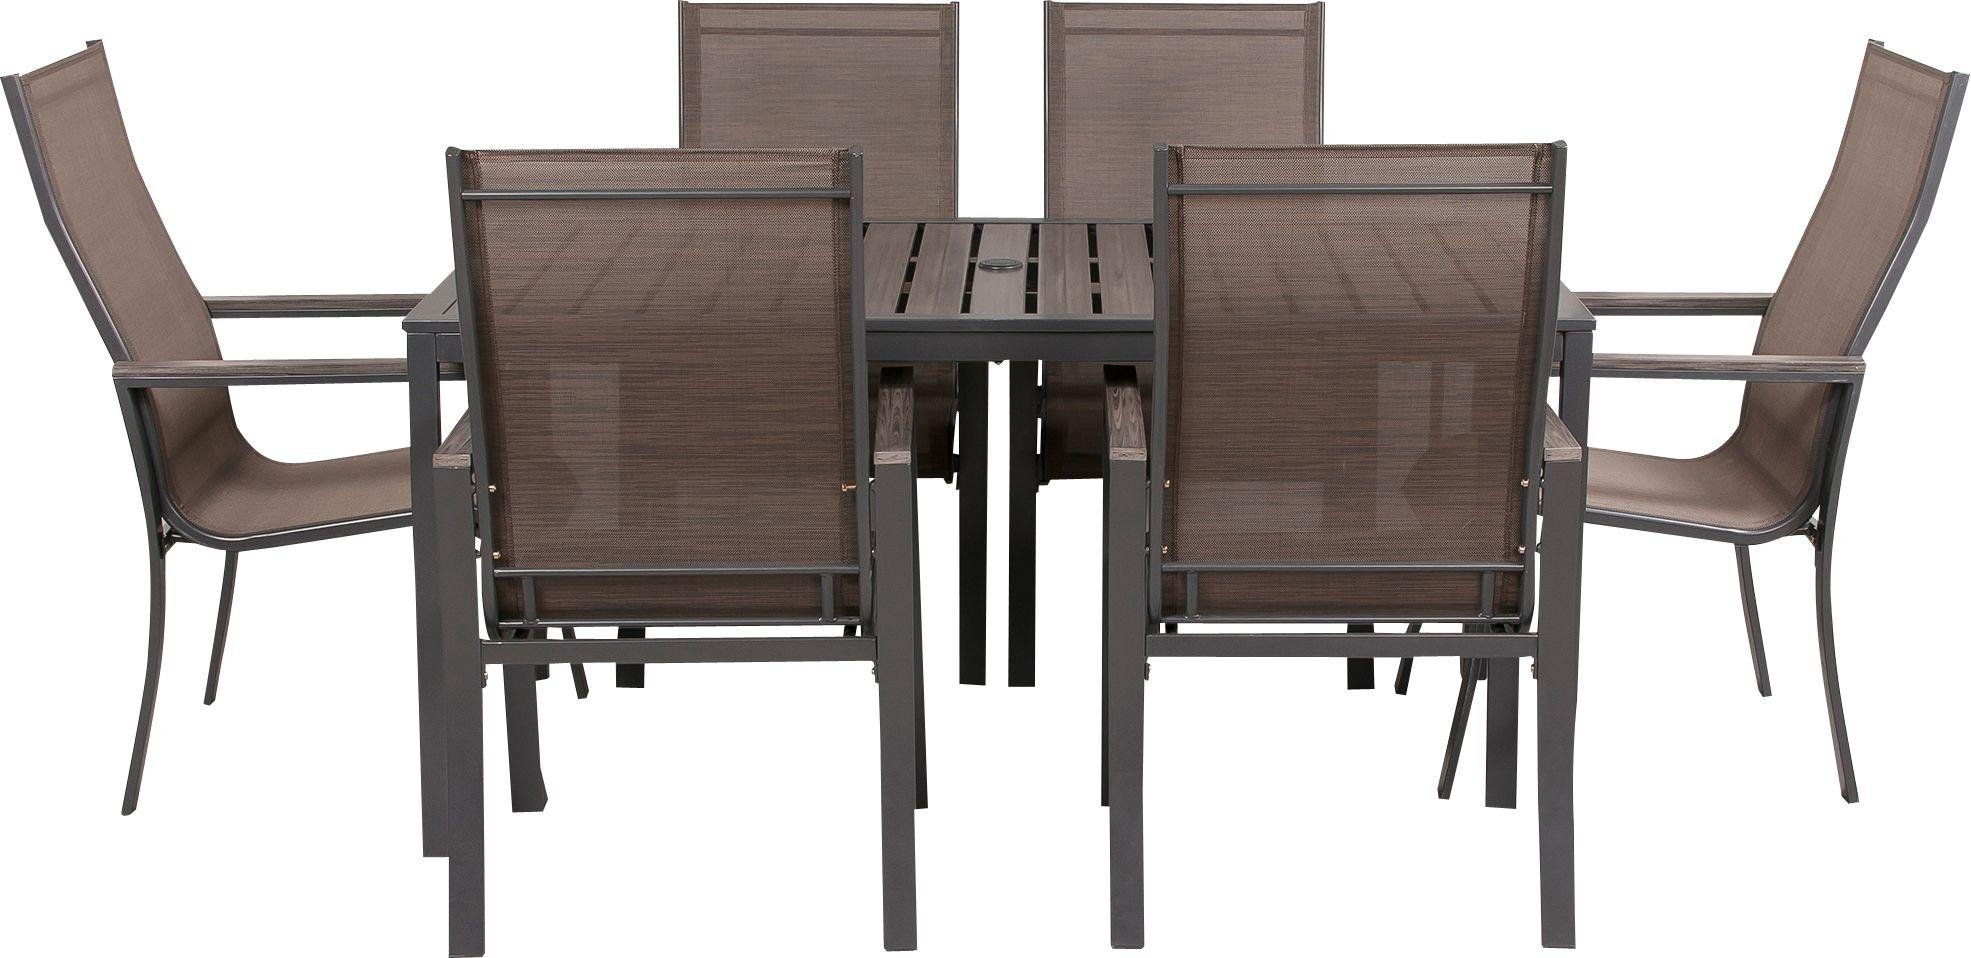 Buy Amalfi 6 Seater Patio Furniture Dining Set at Argos Your line S